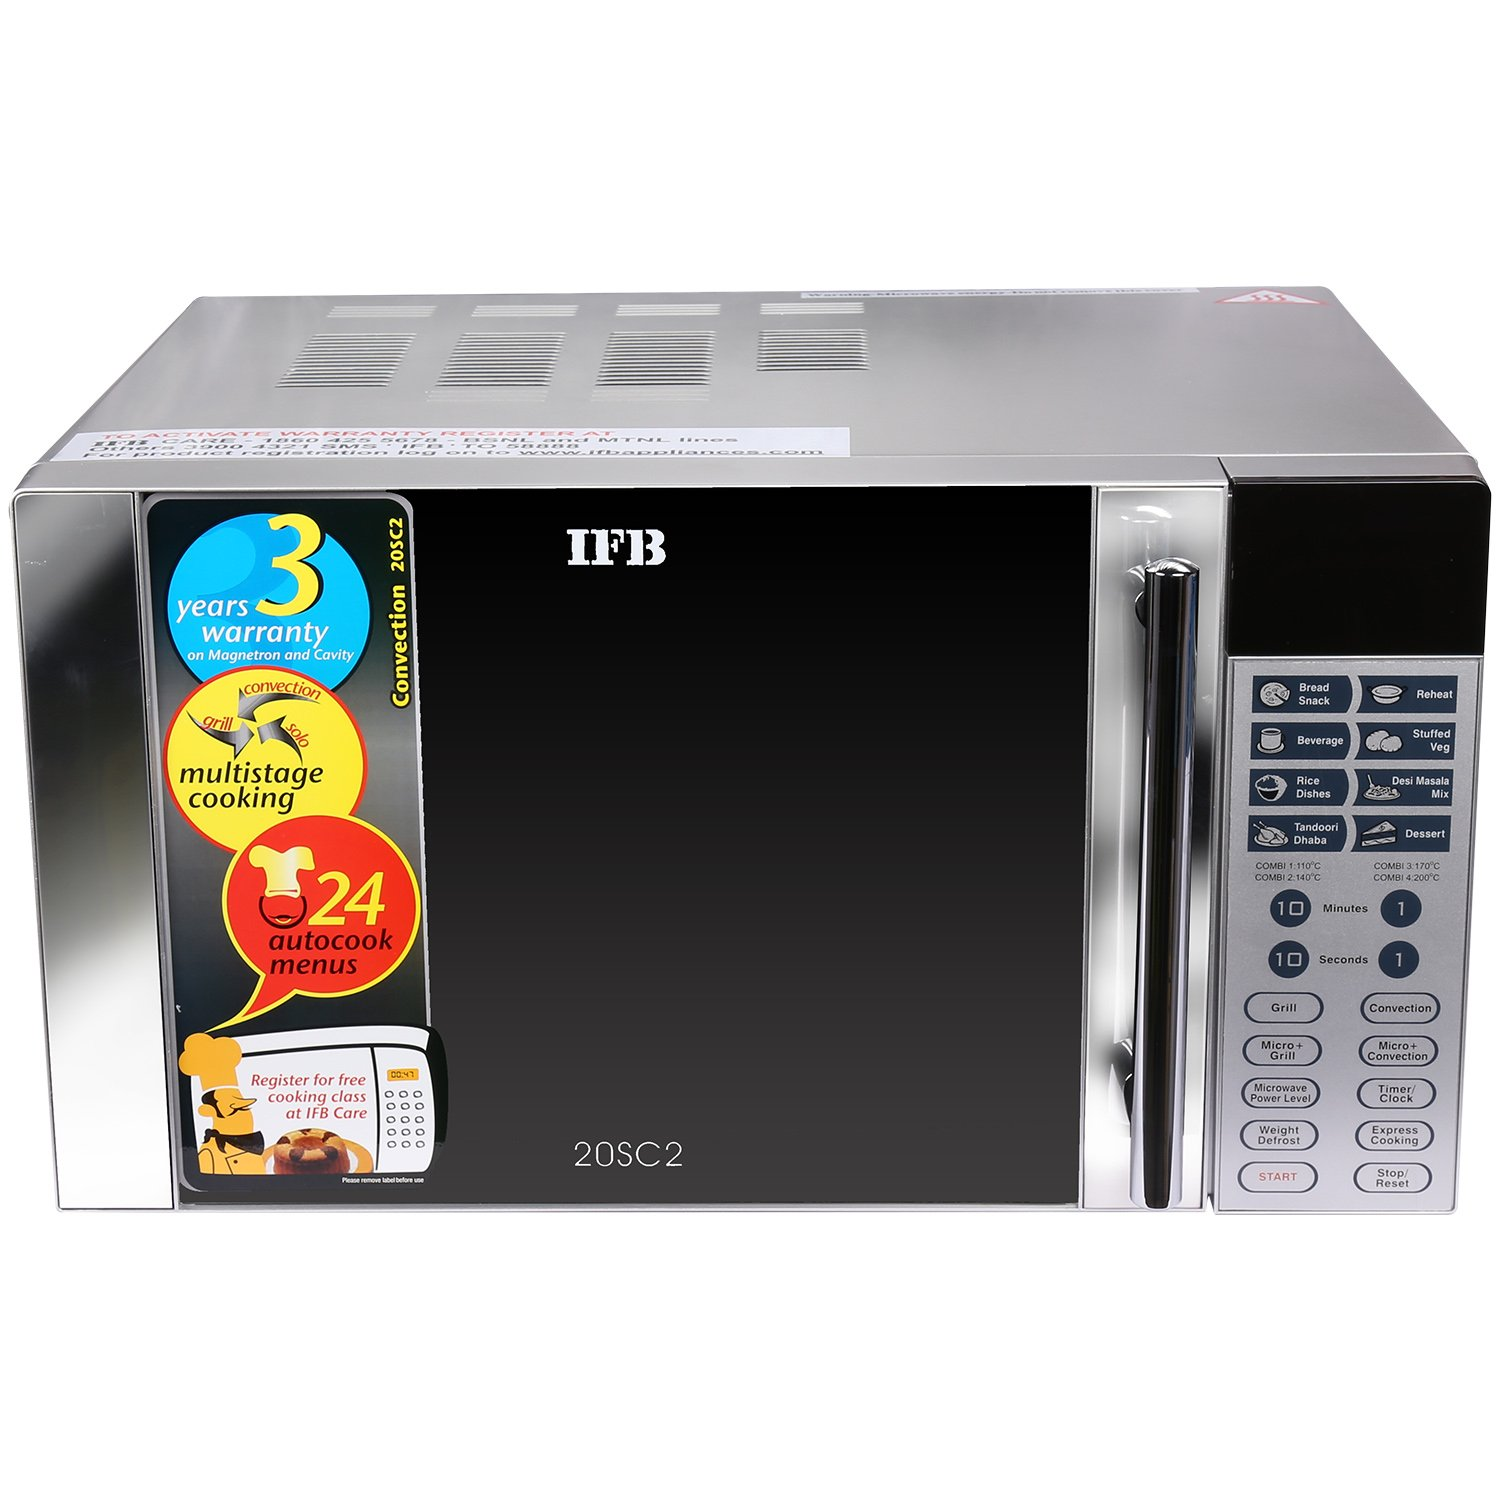 IFB 20SC2 20-Litre 1200-Watt Convection Microwave Oven